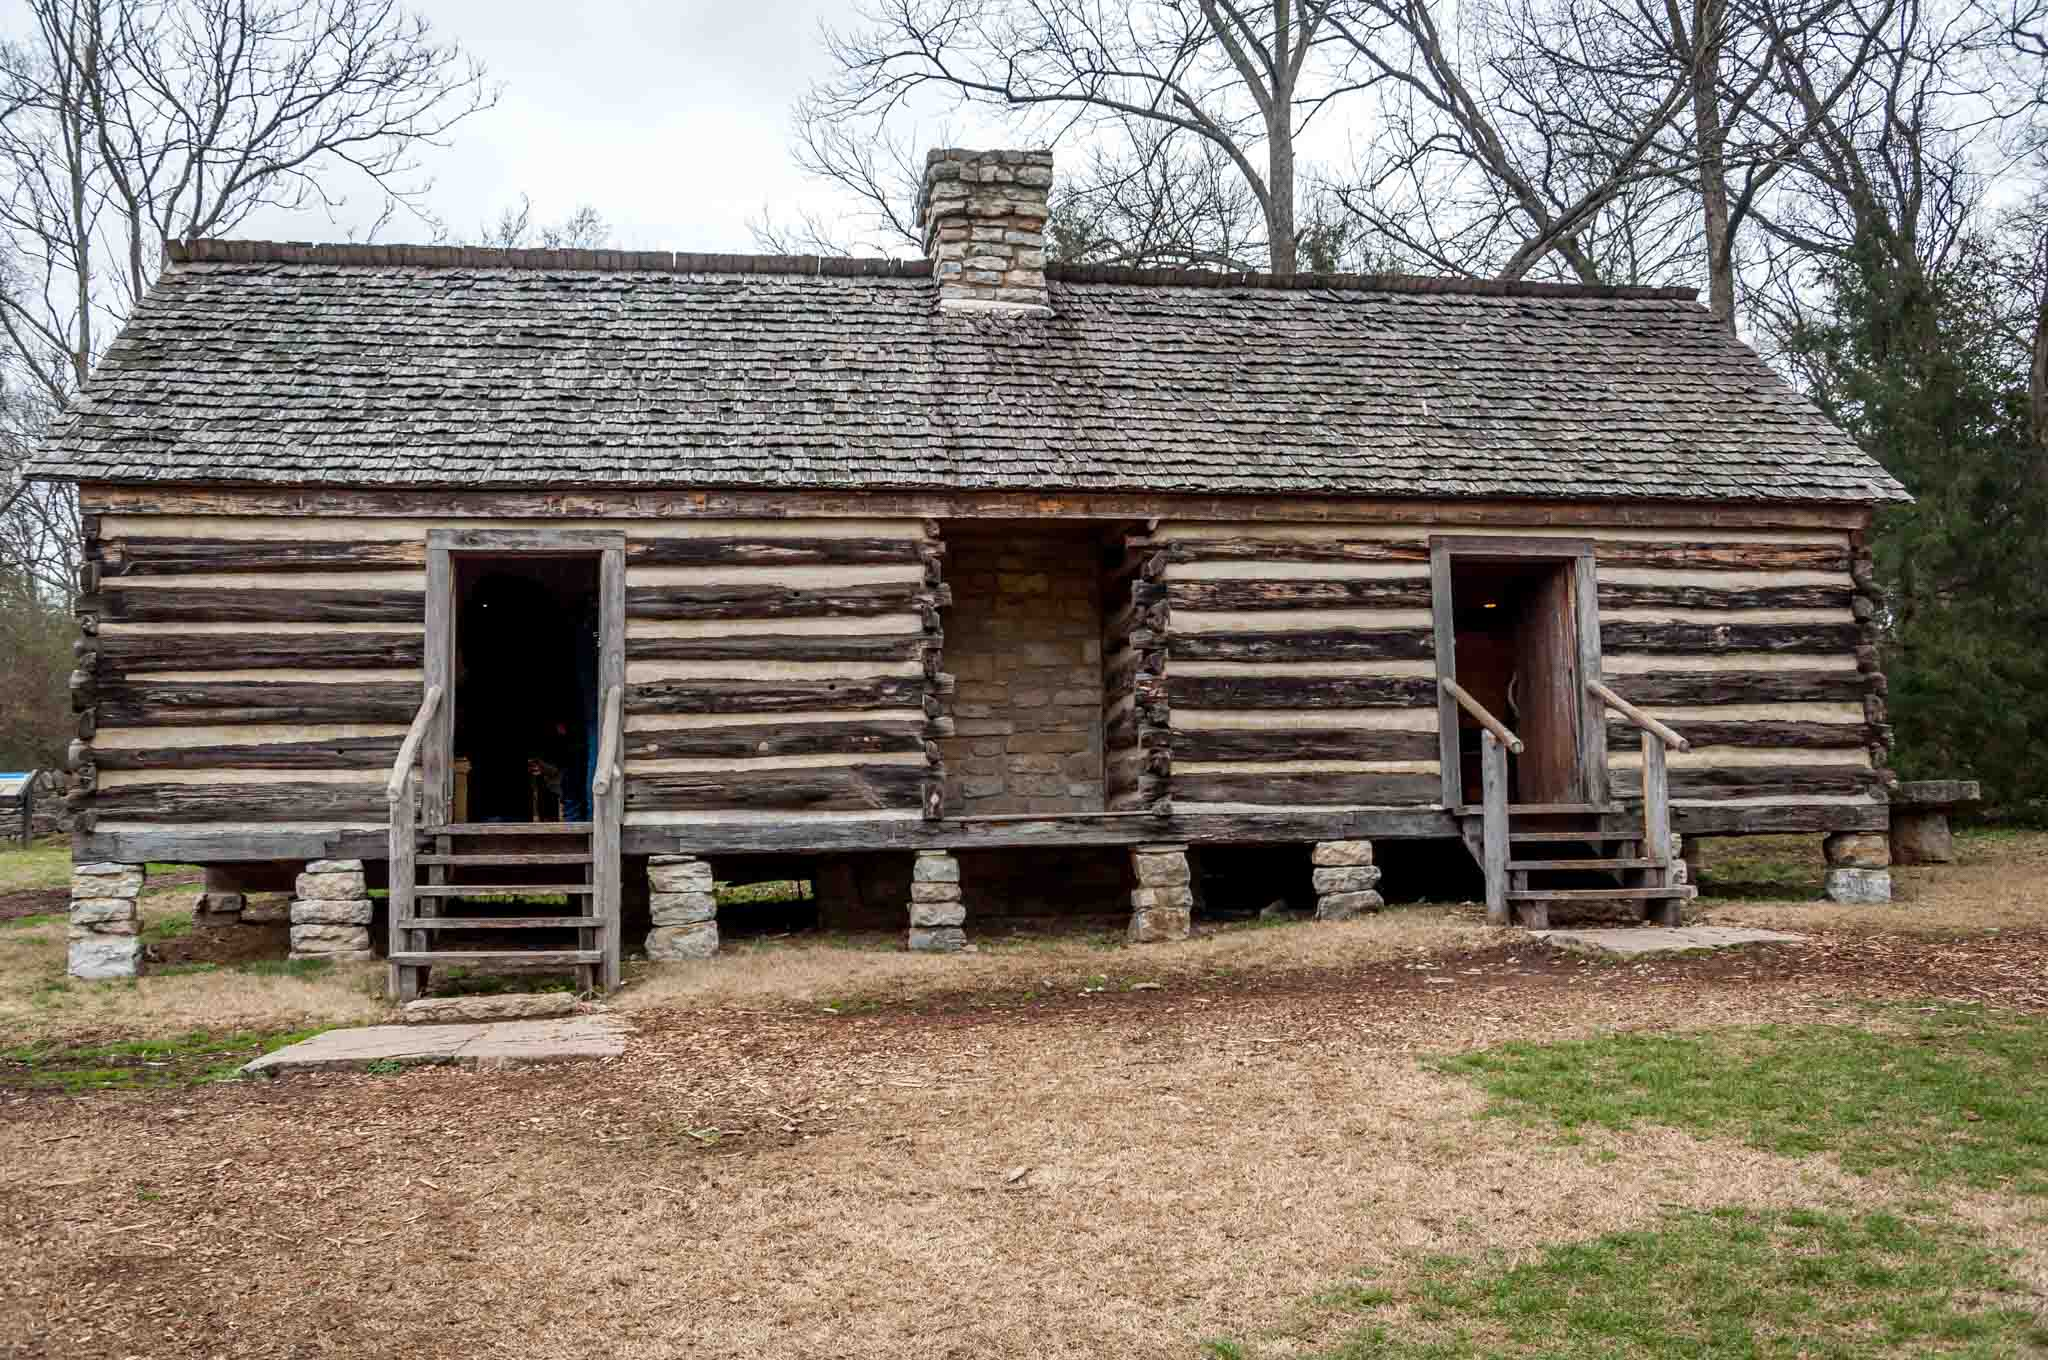 Log cabin with chimney, a reconstructed slave cabin on the grounds of Belle Meade